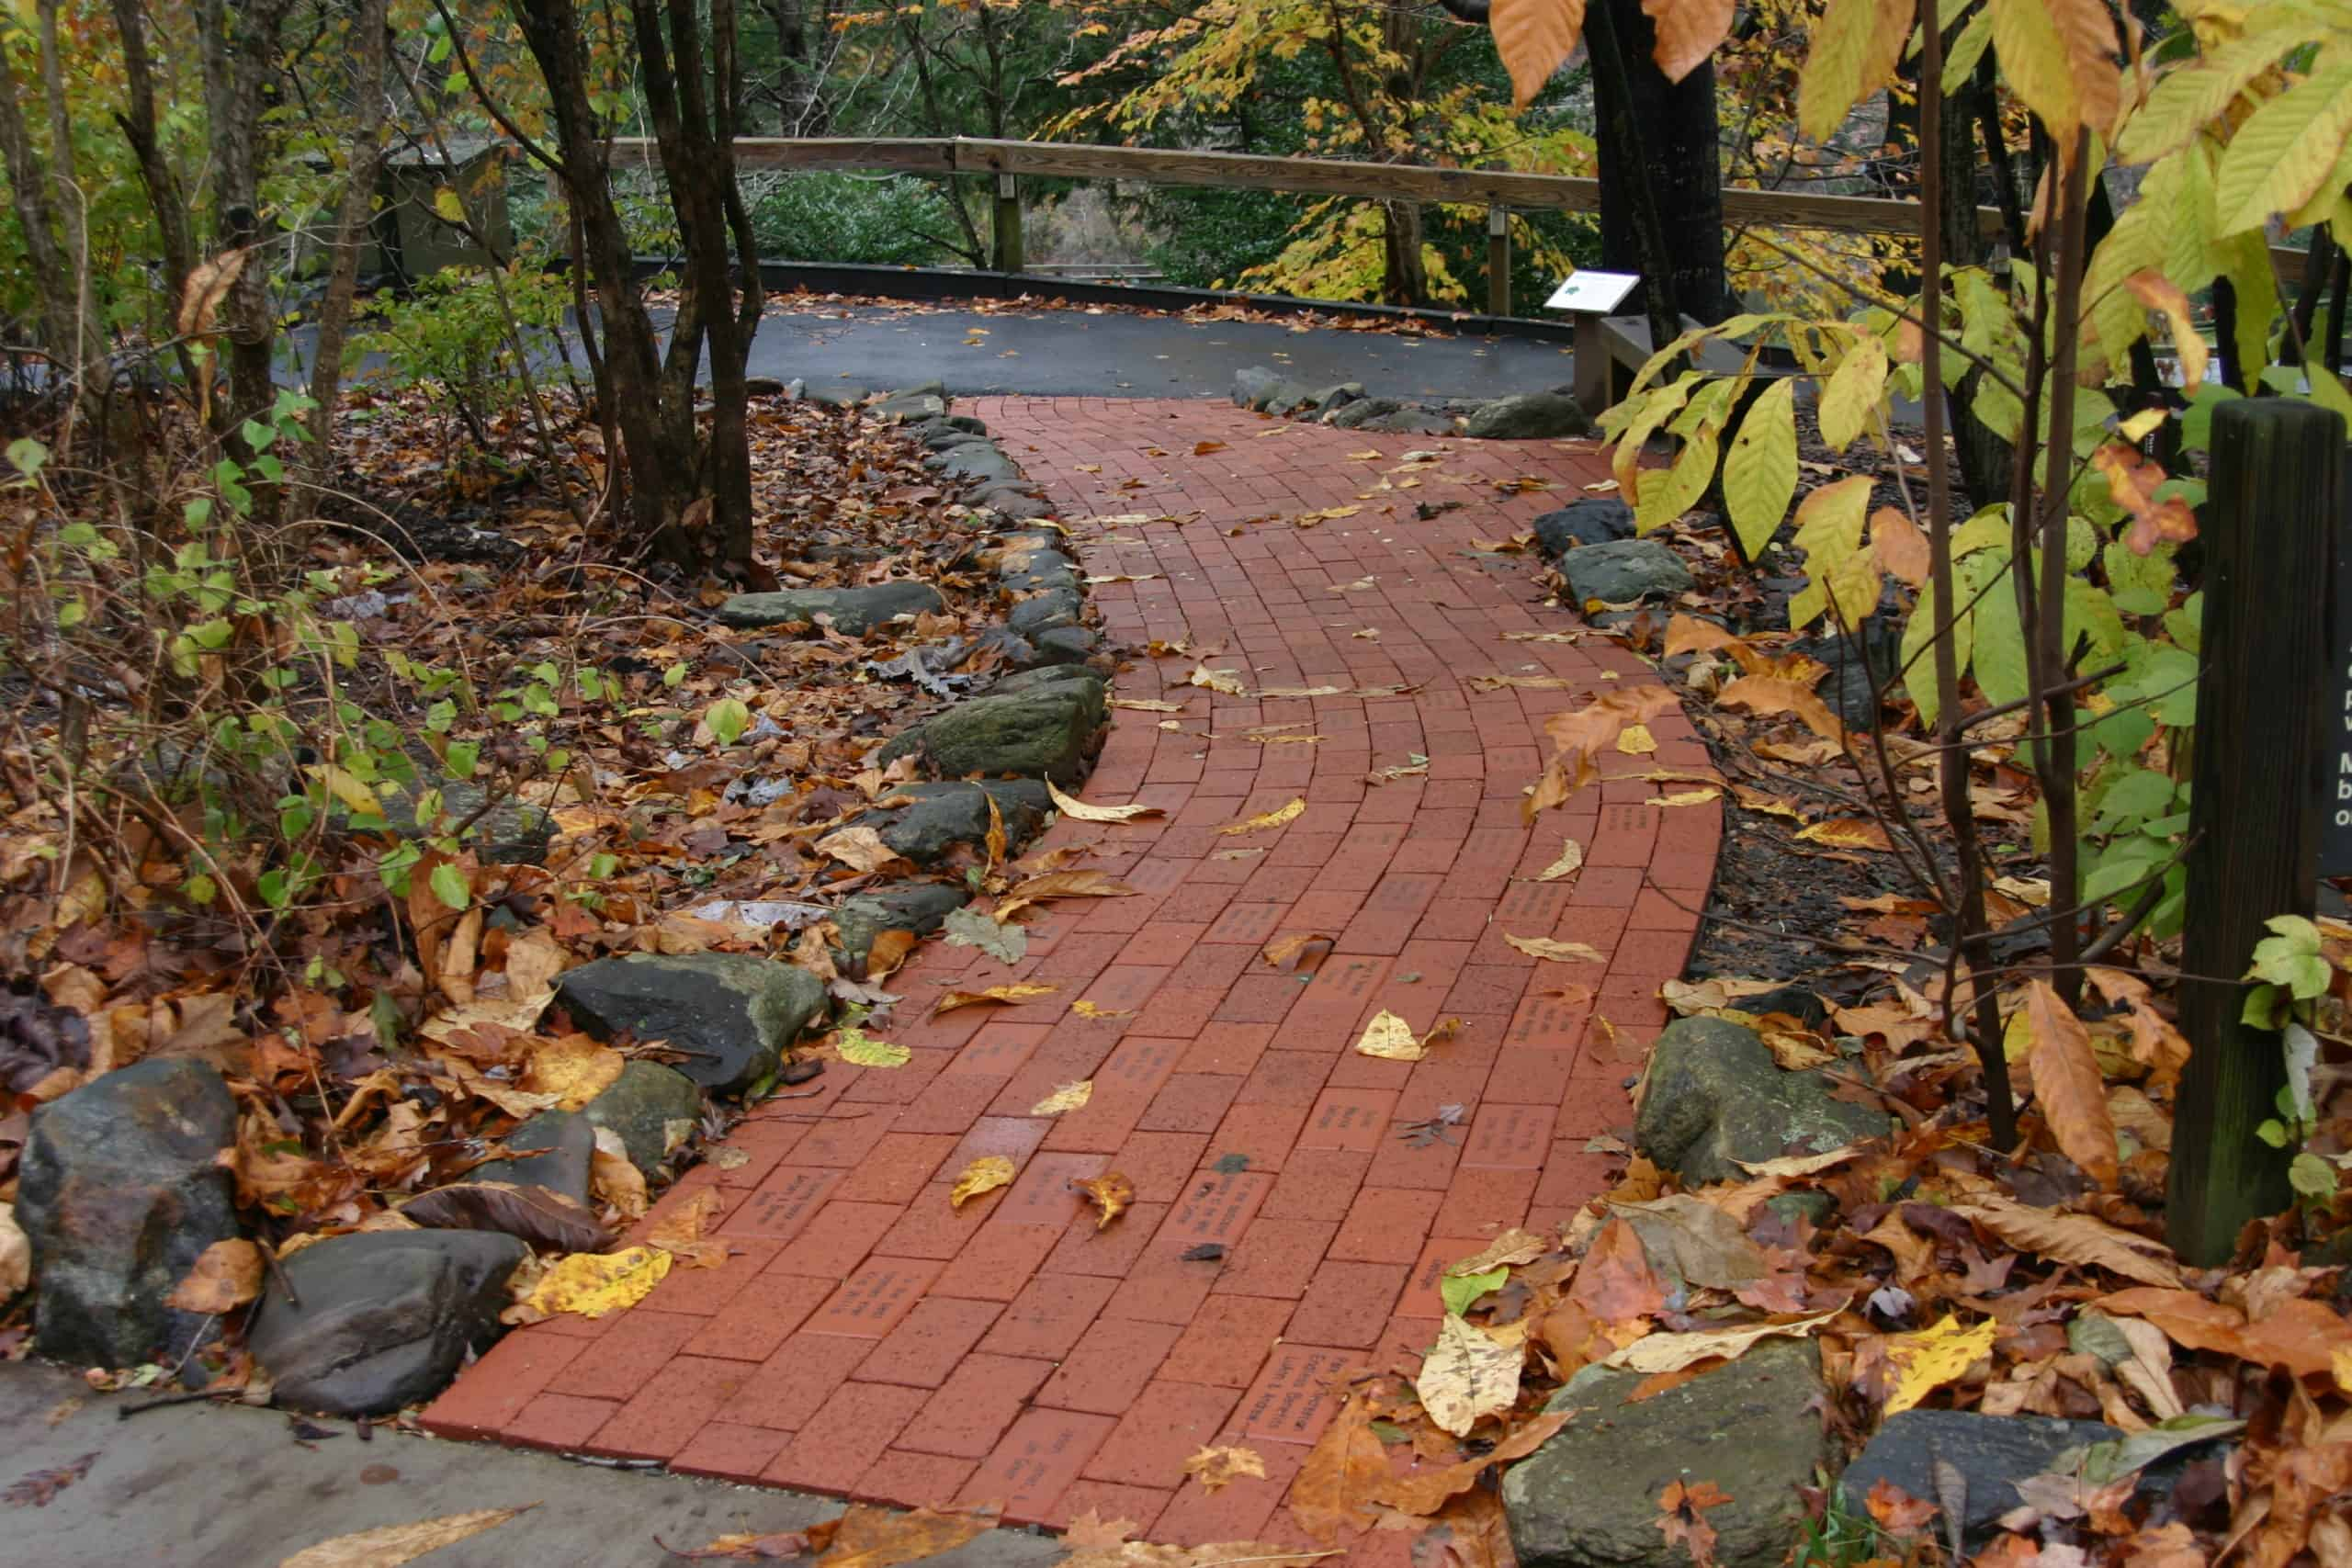 A brick pathway at the Nature Center.